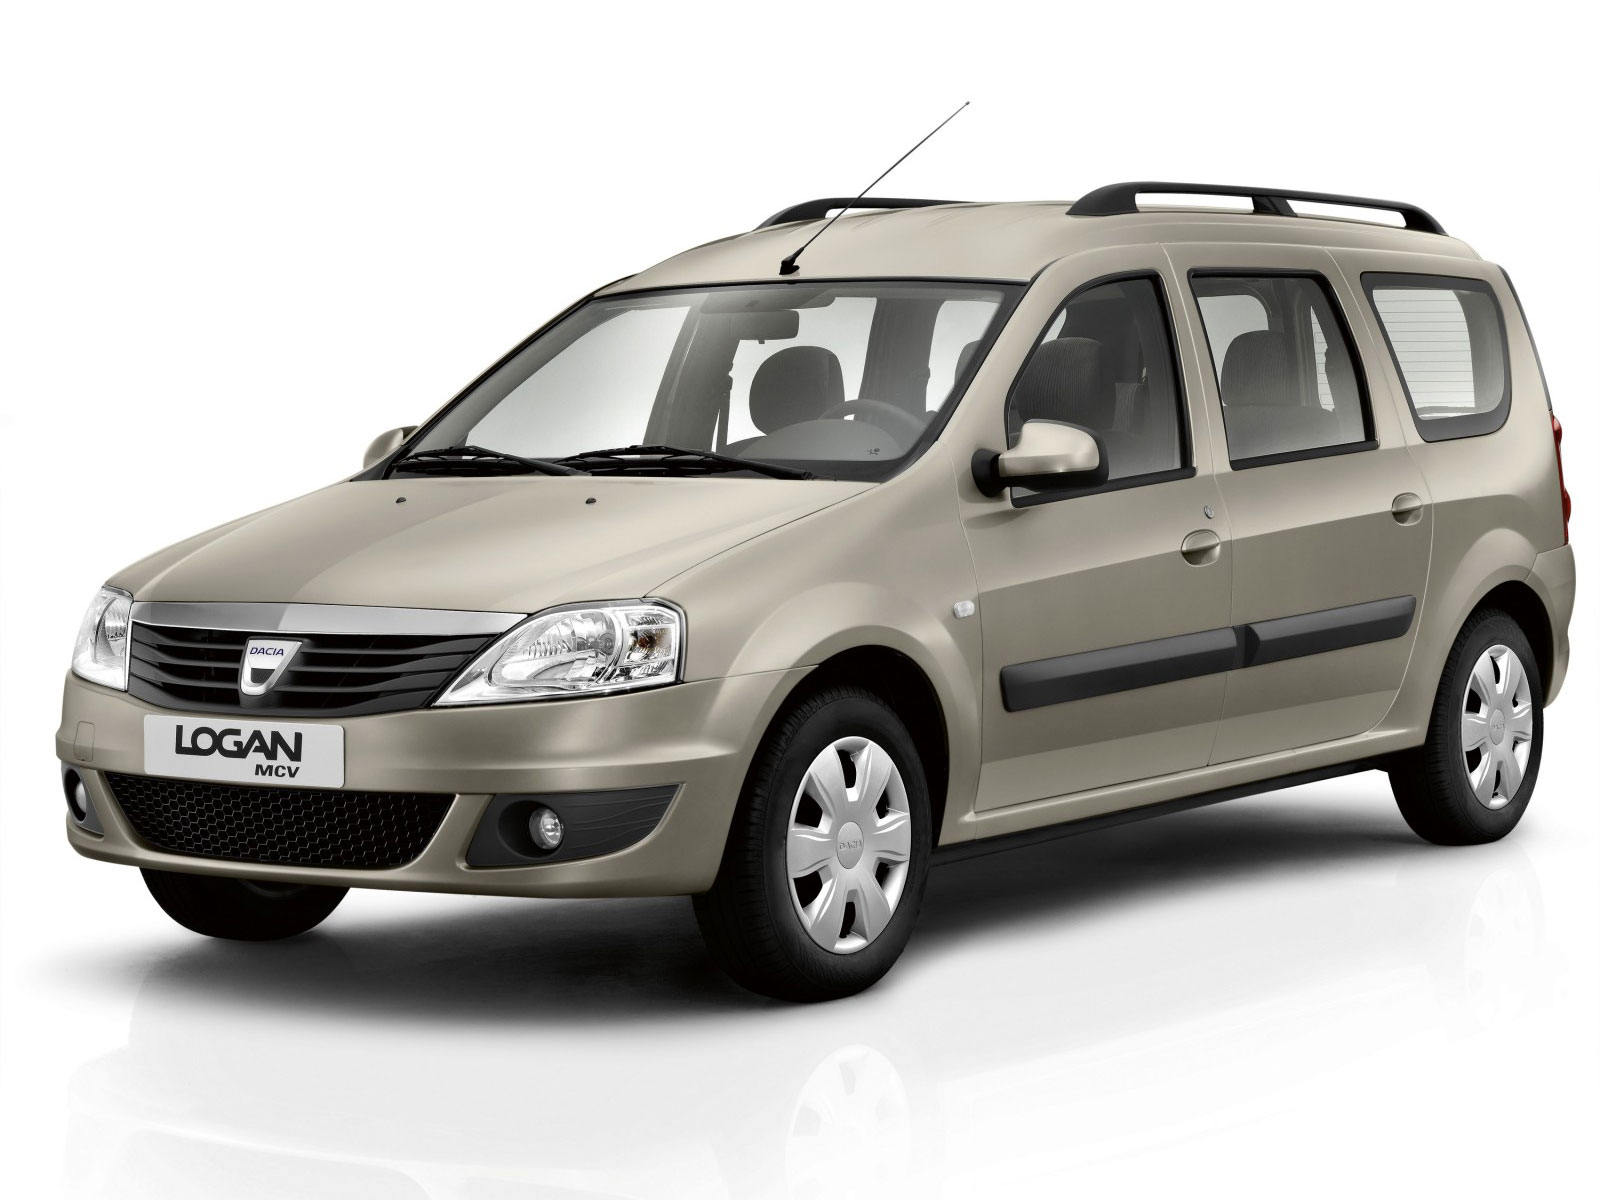 imagini dacia logan mcv facelift lansat oficial. Black Bedroom Furniture Sets. Home Design Ideas